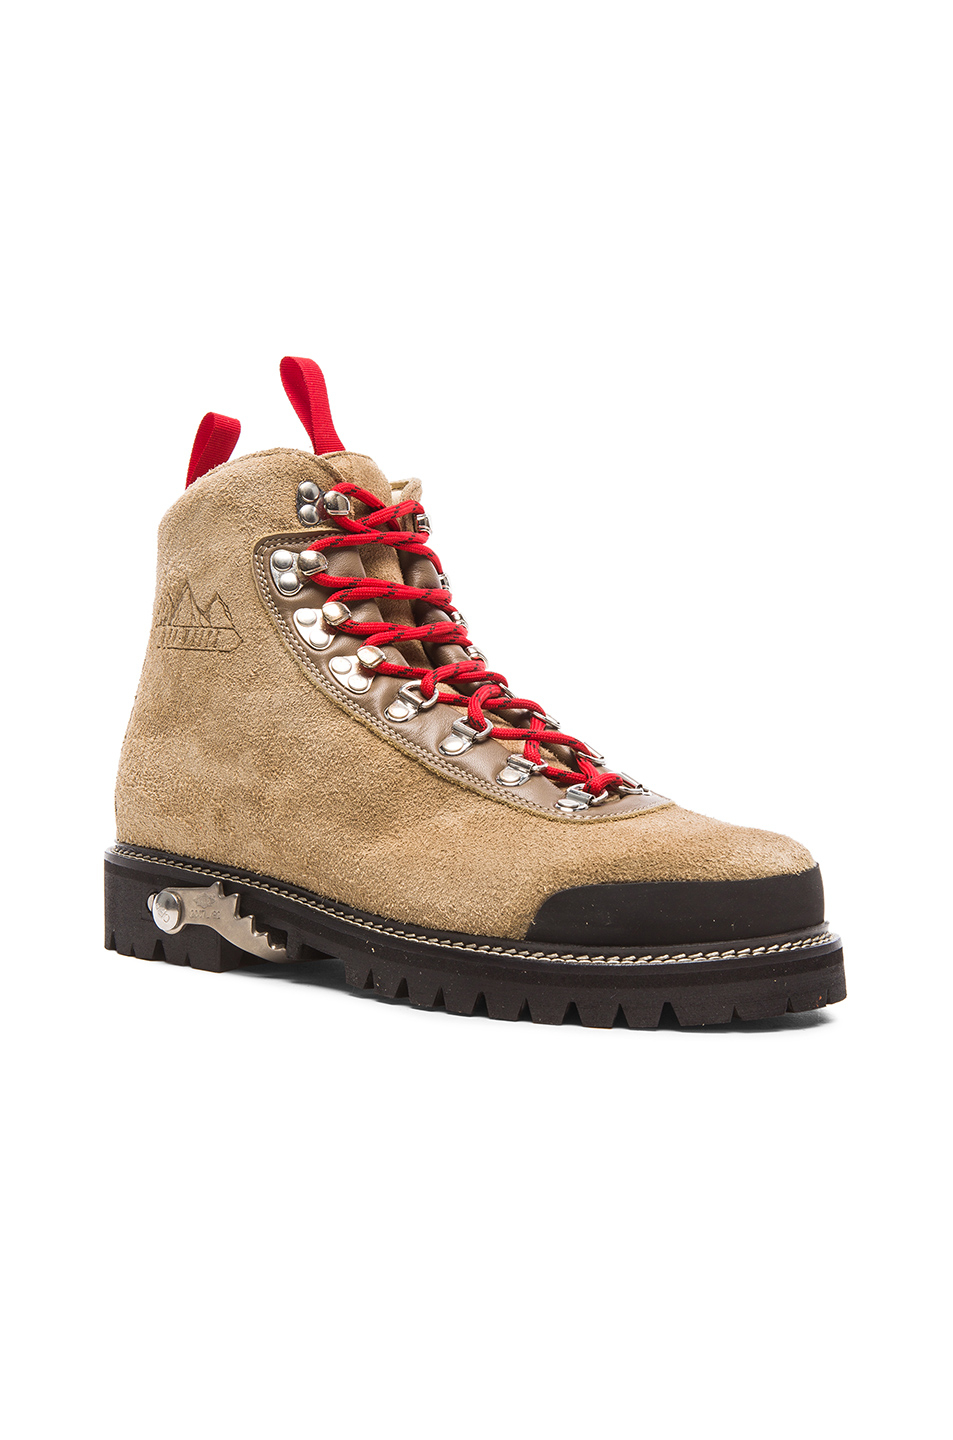 Off-white c/o virgil abloh Suede Hiking Boots in Natural ...